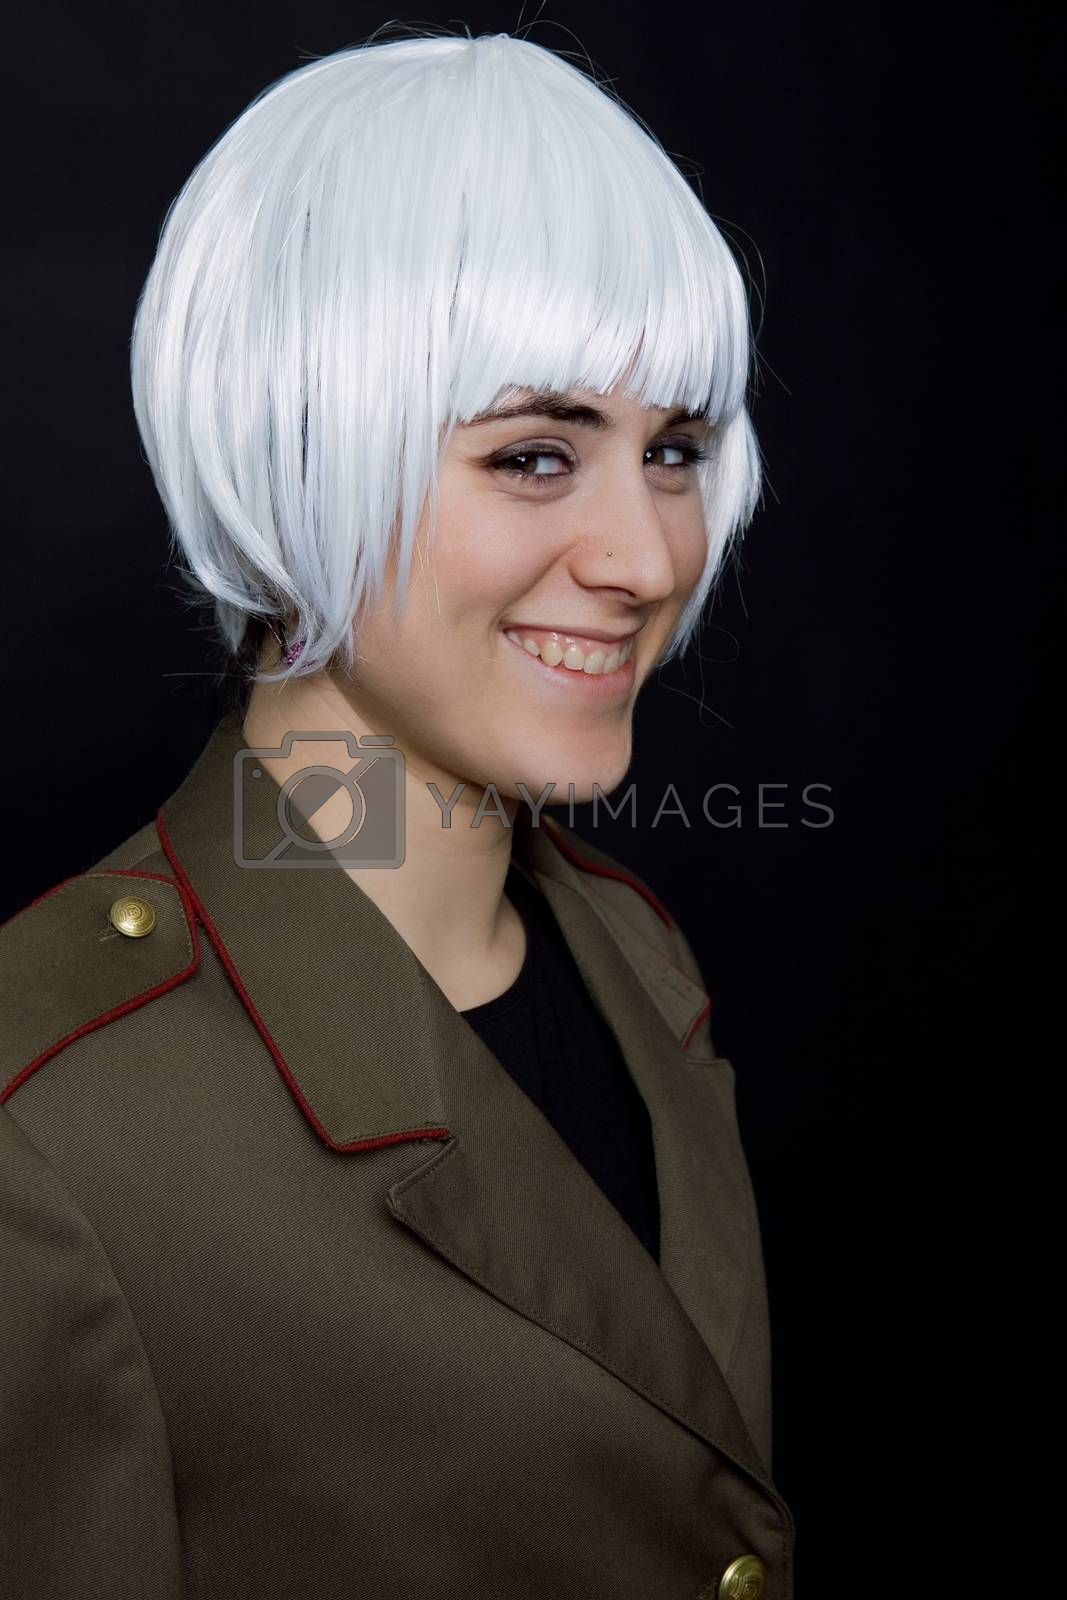 Royalty free image of white wig by zittto